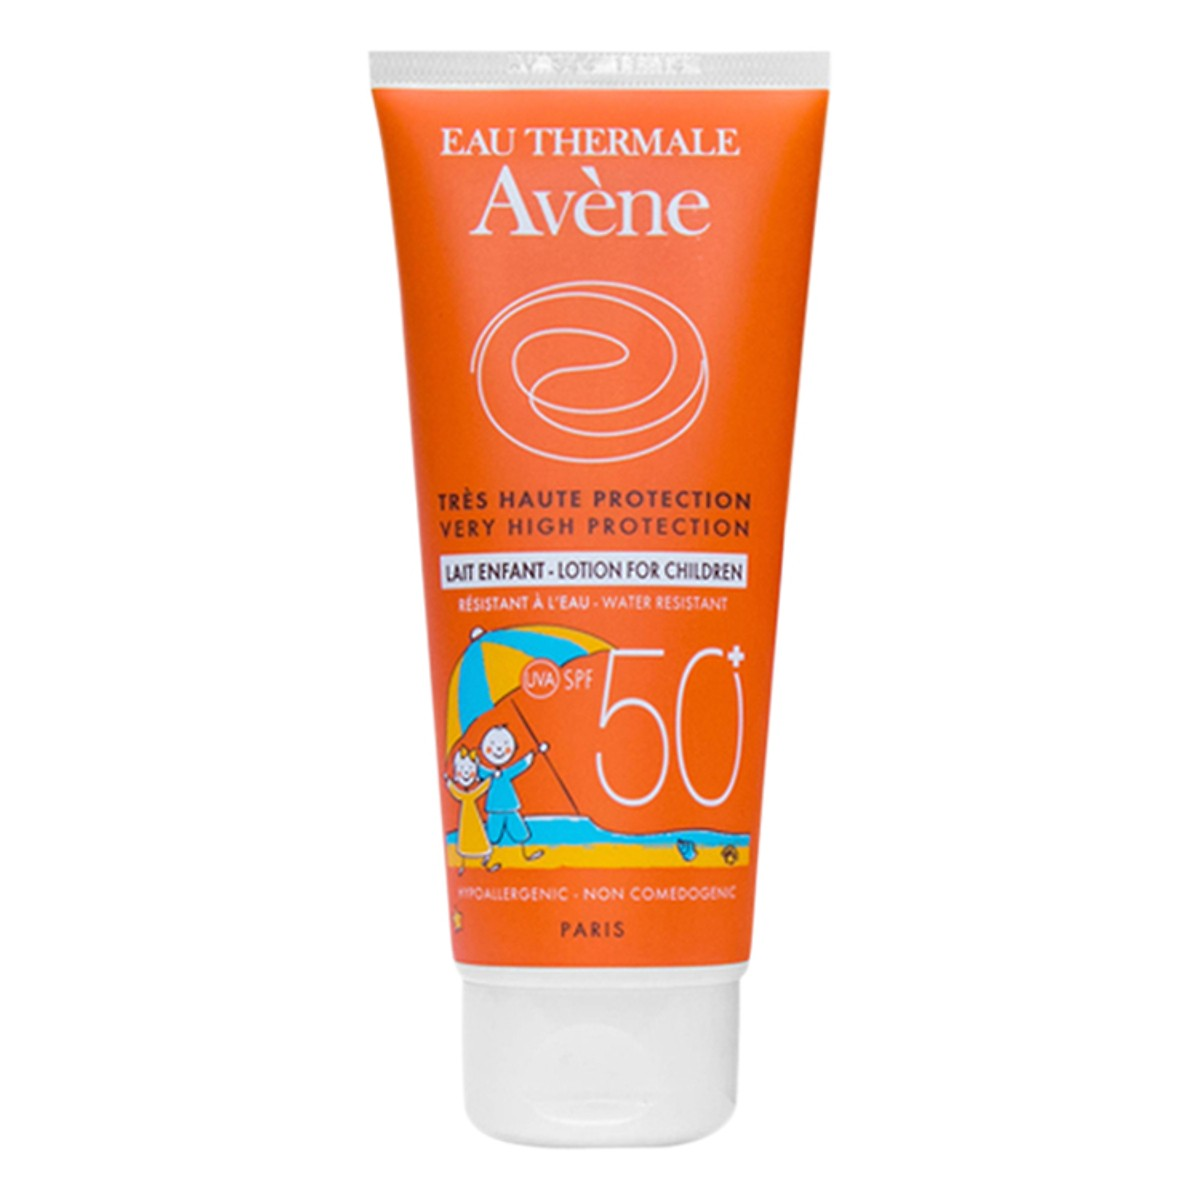 Chống Nắng Cho Trẻ Em Avene Protection Lotion For Children 50+ (100ml) - A1ASP4 - 100715911